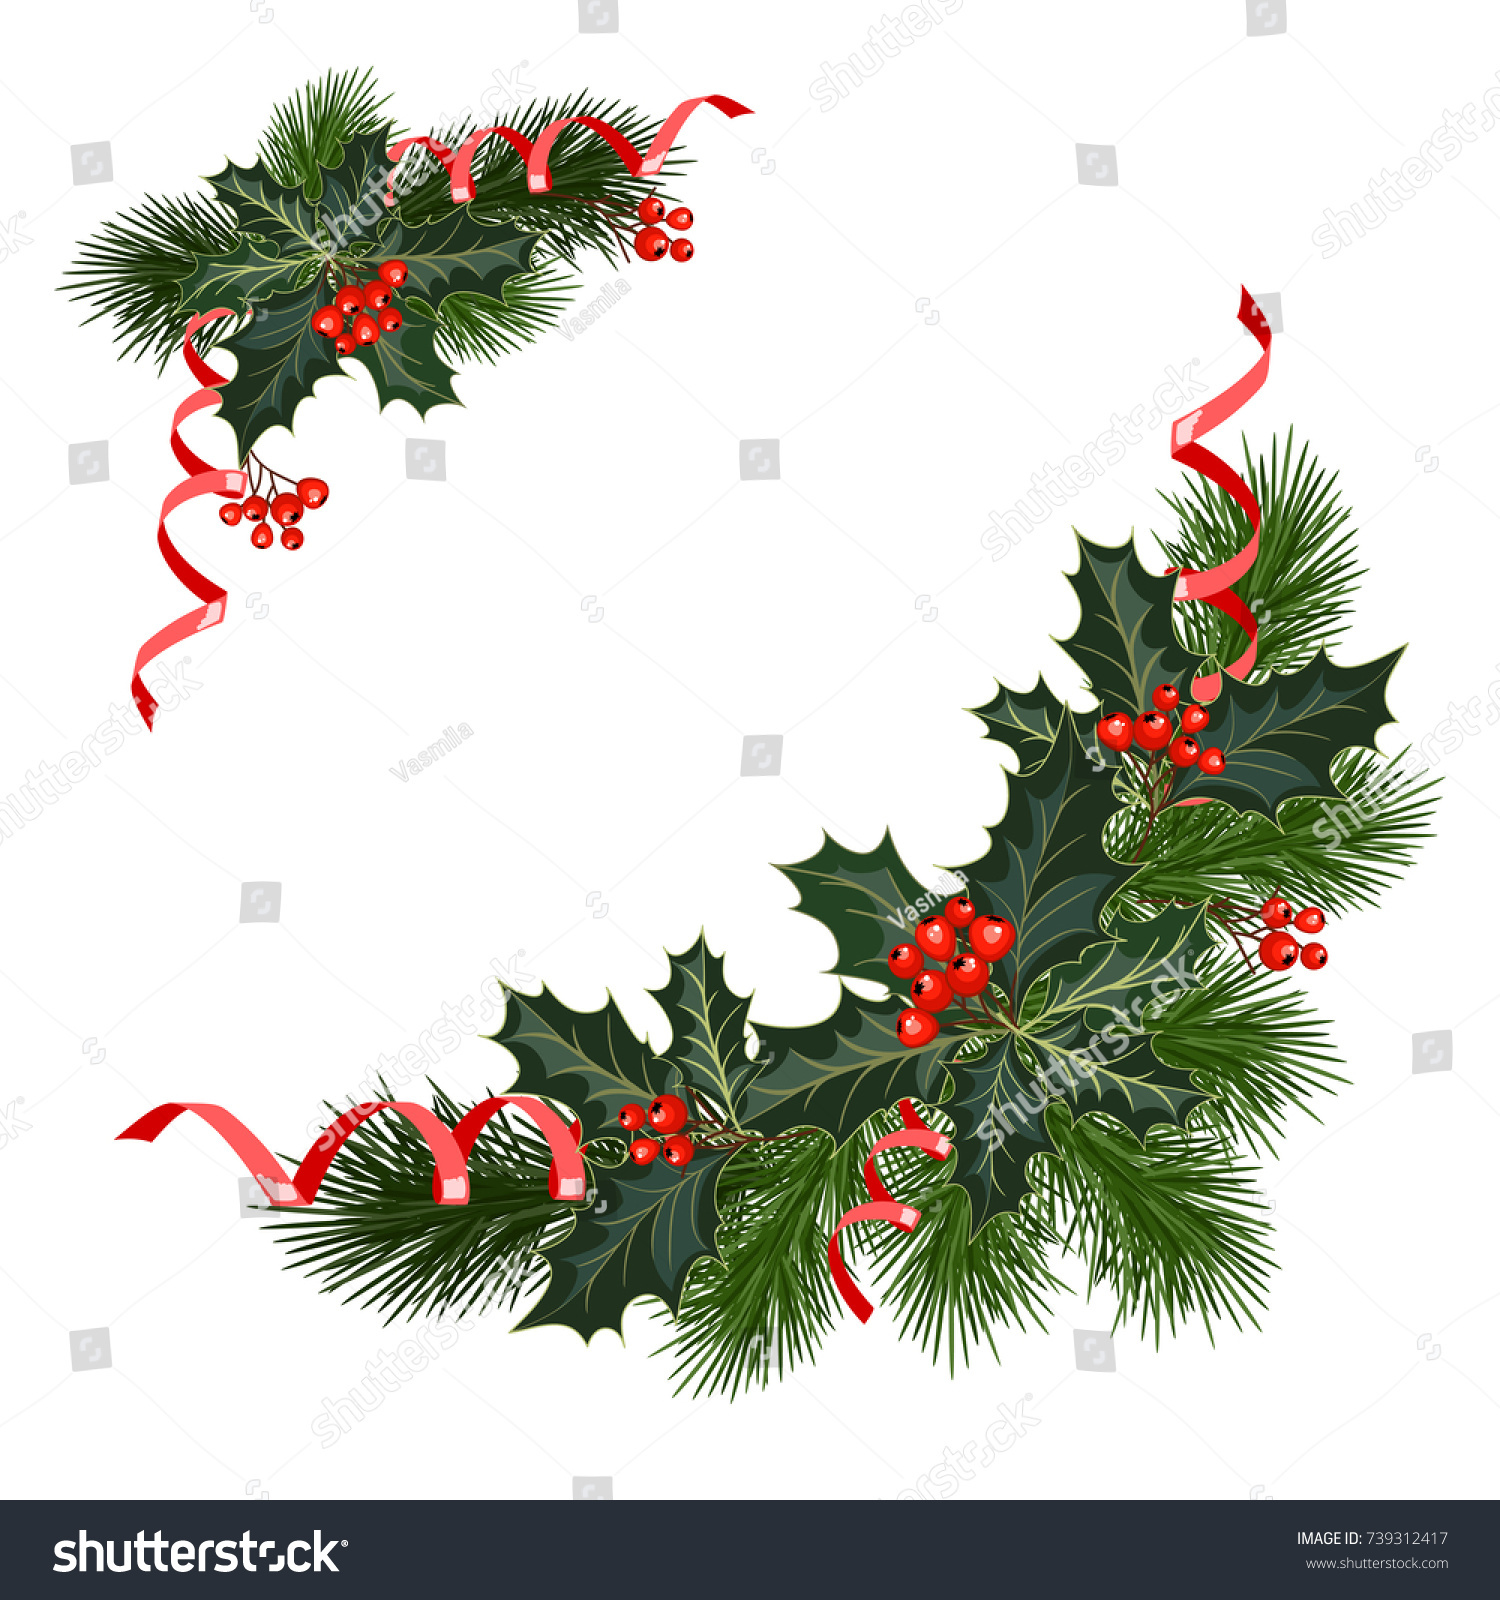 Christmas Decorations Fir Tree Holly Berries Stock Vector